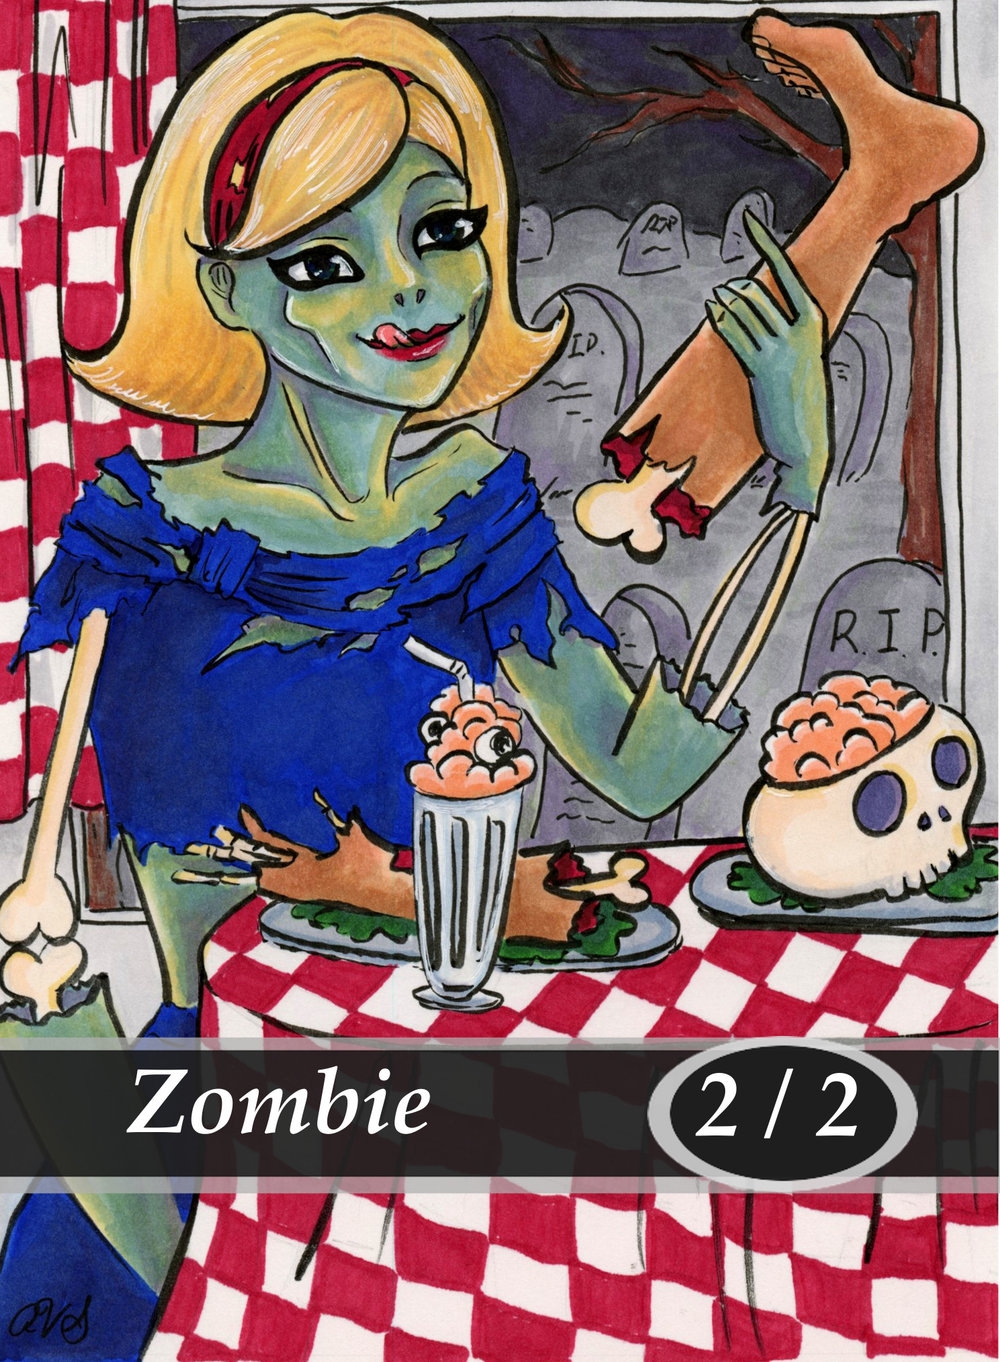 Zombie Magic the Gathering MTG Token by Anna Van Skike with AnnaVSart